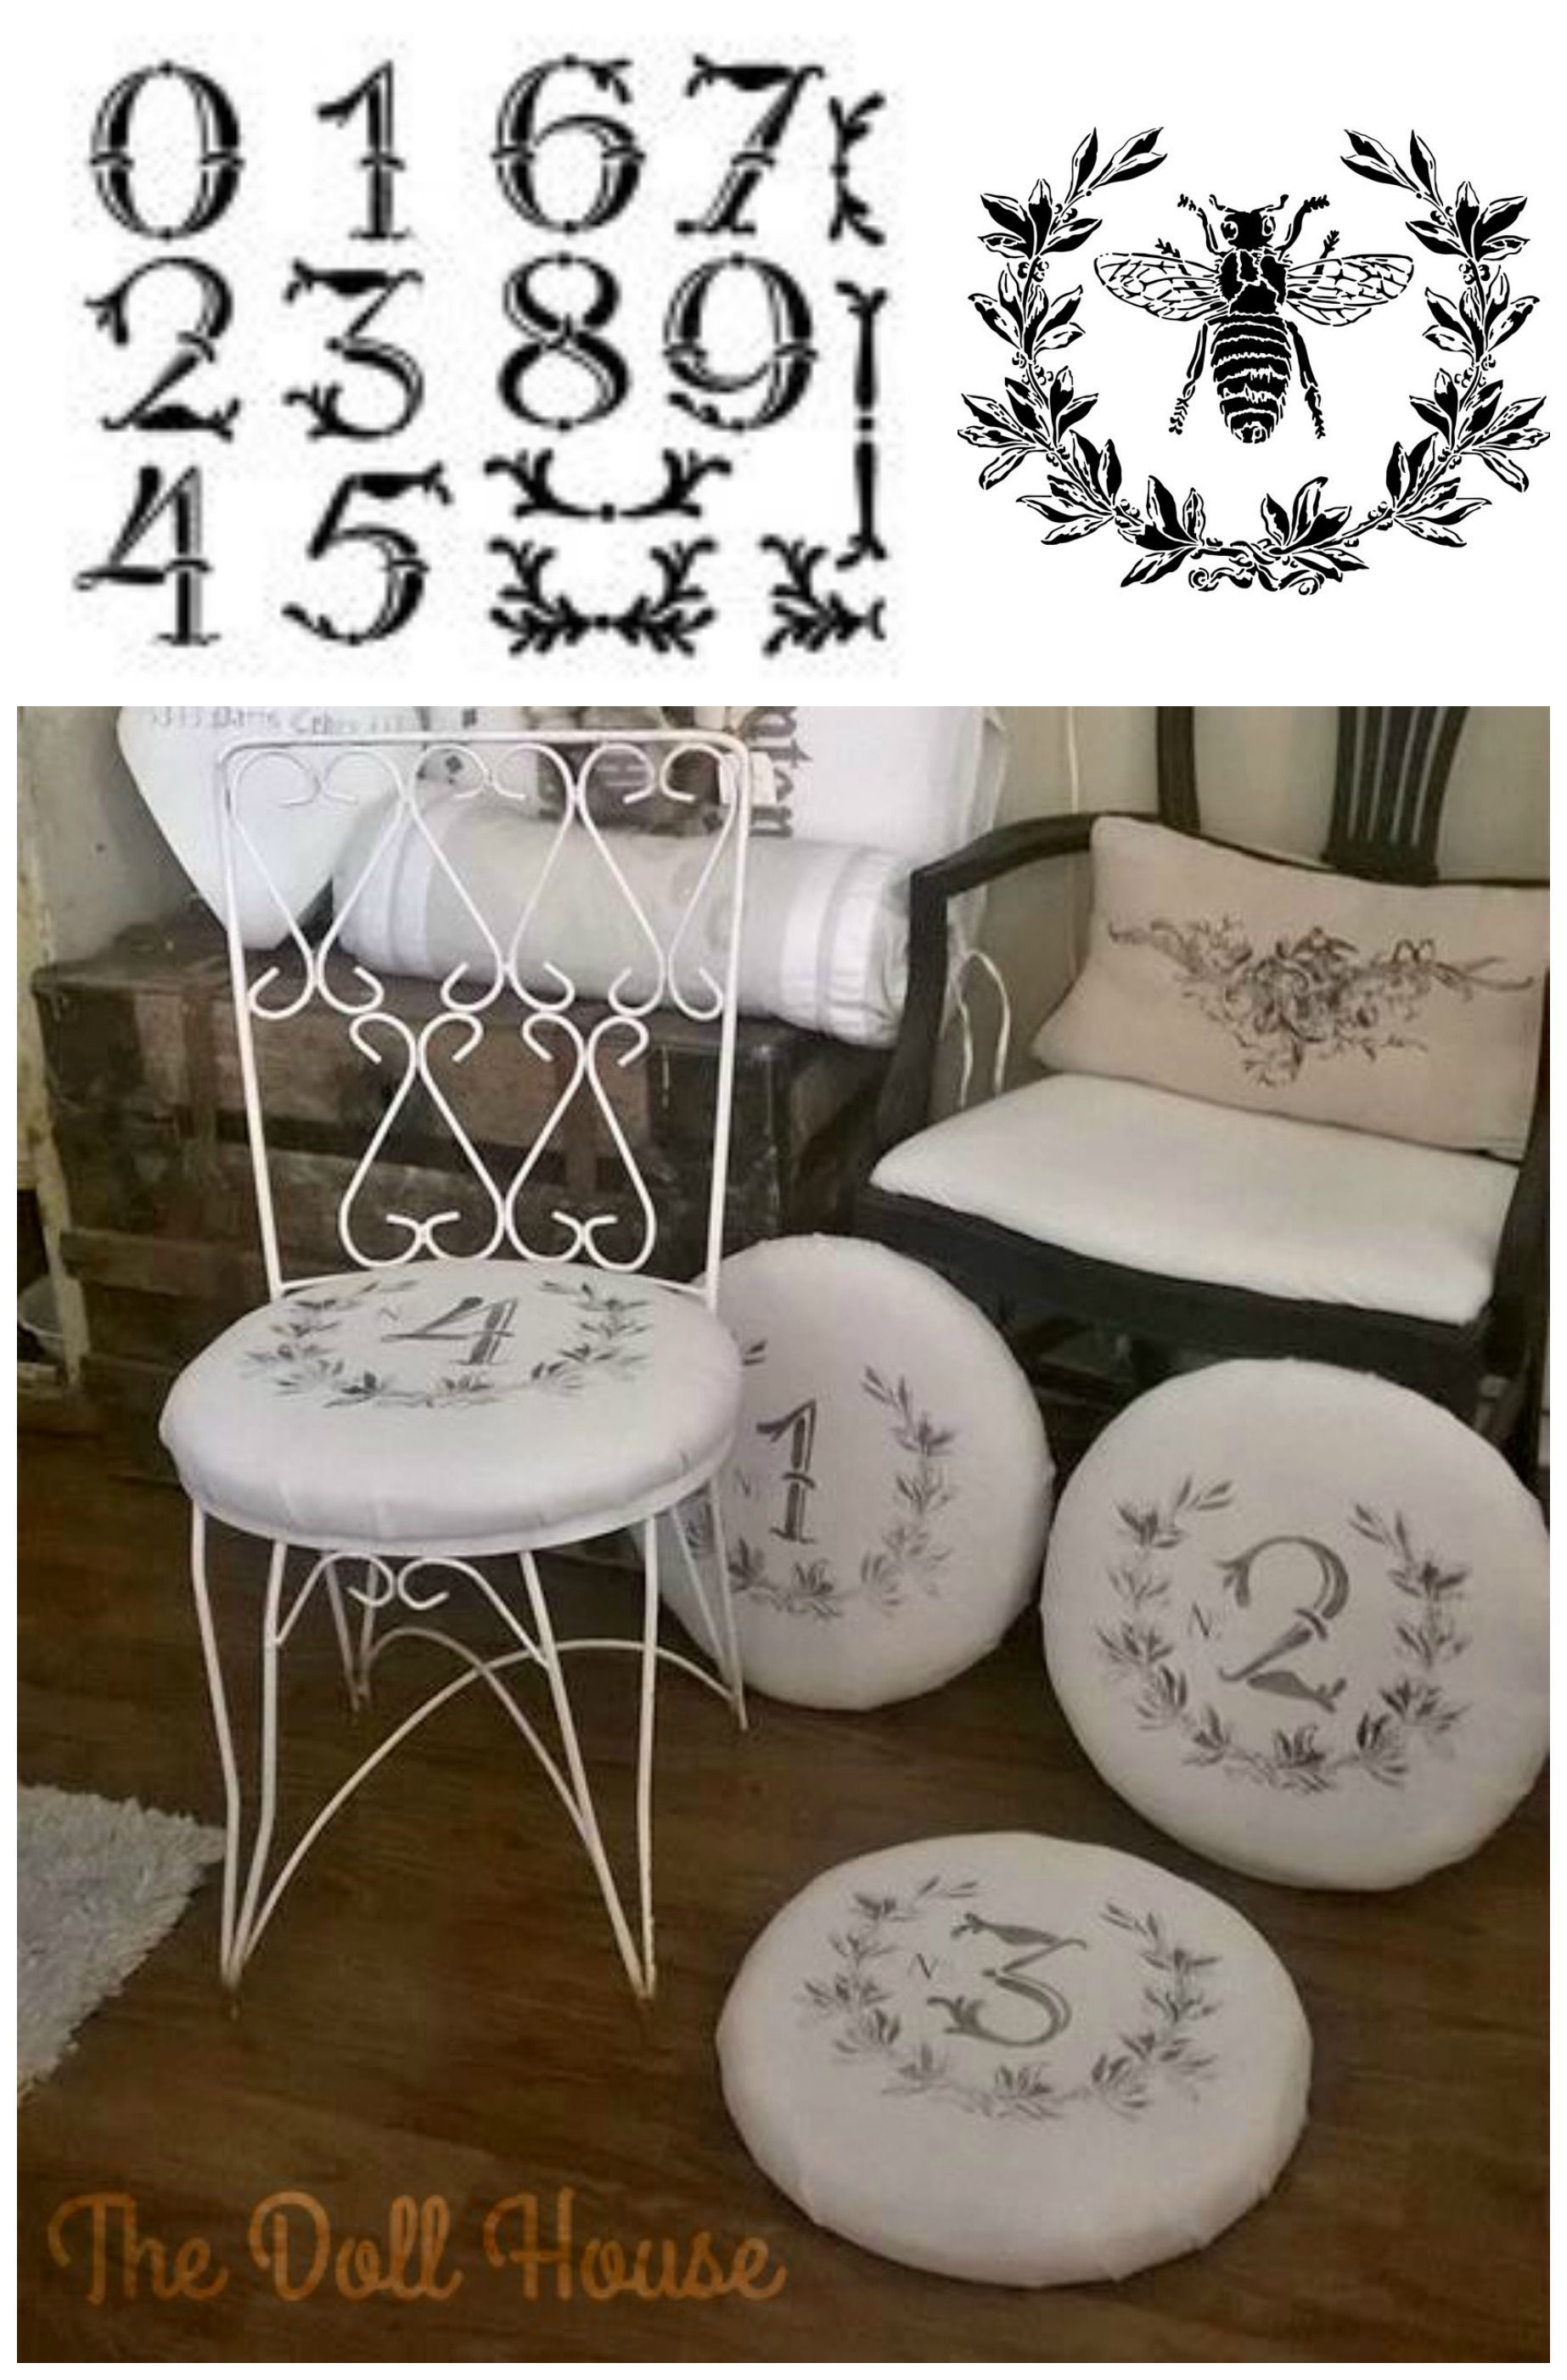 These French Inspired Chair Pad Covers Were Painted Using The Laurel Wreath From Our Bee Stencil